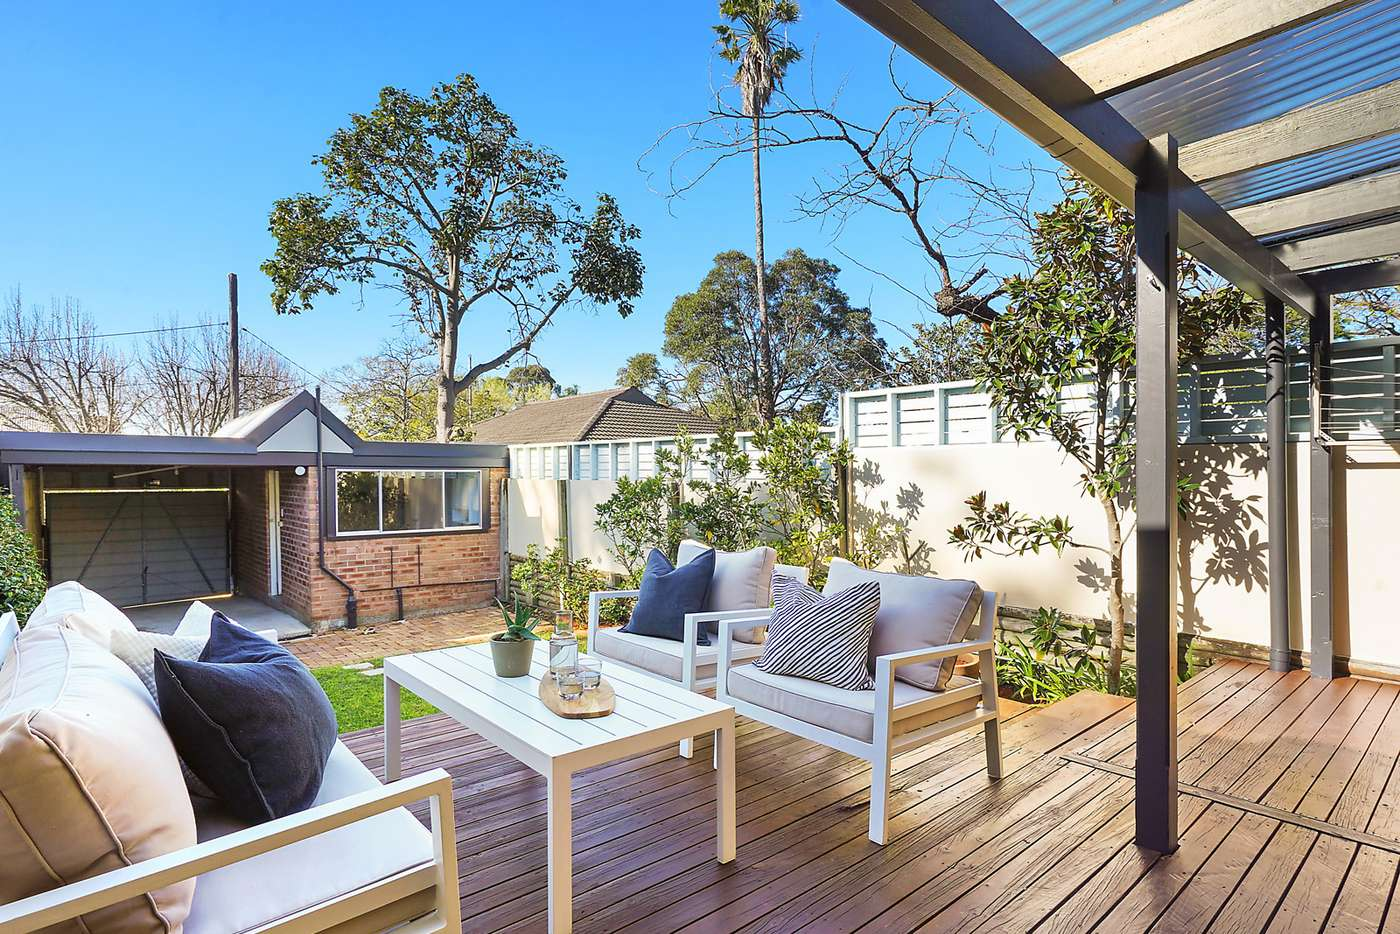 Fifth view of Homely house listing, 33 Slade Street, Naremburn NSW 2065